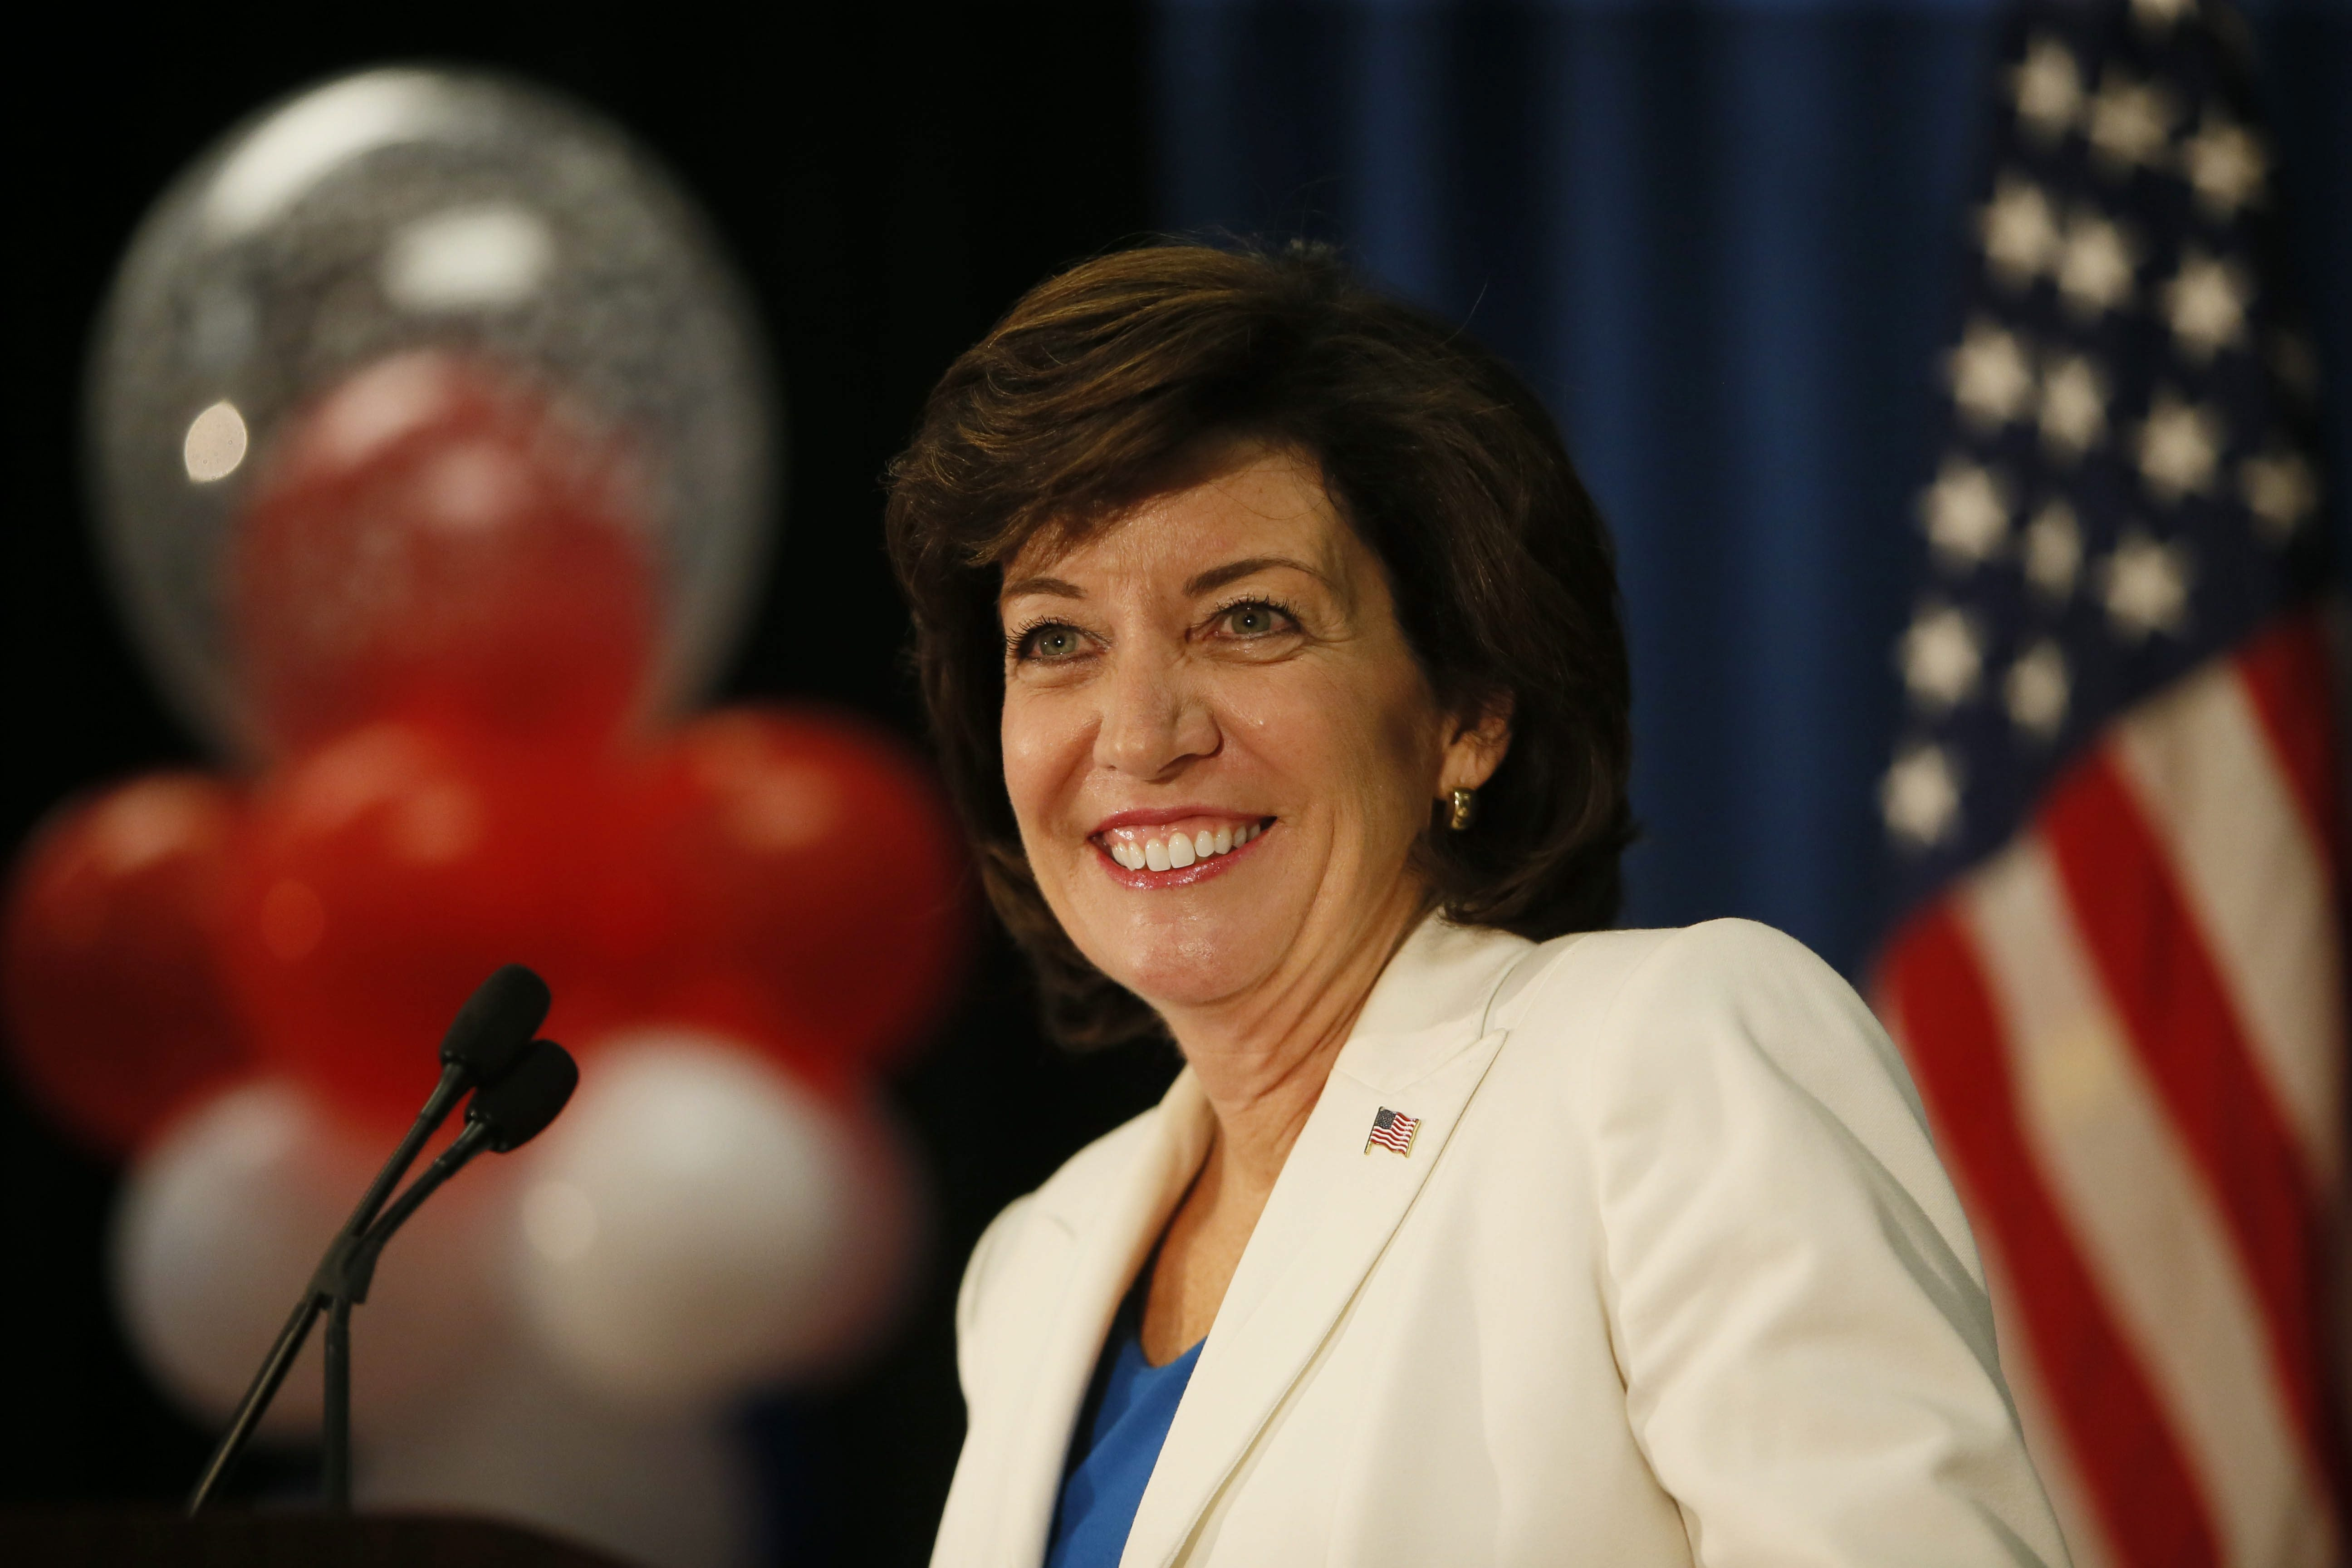 Lt. Gov. candidate Kathy Hochul speaks her mind, but does it with a smile.